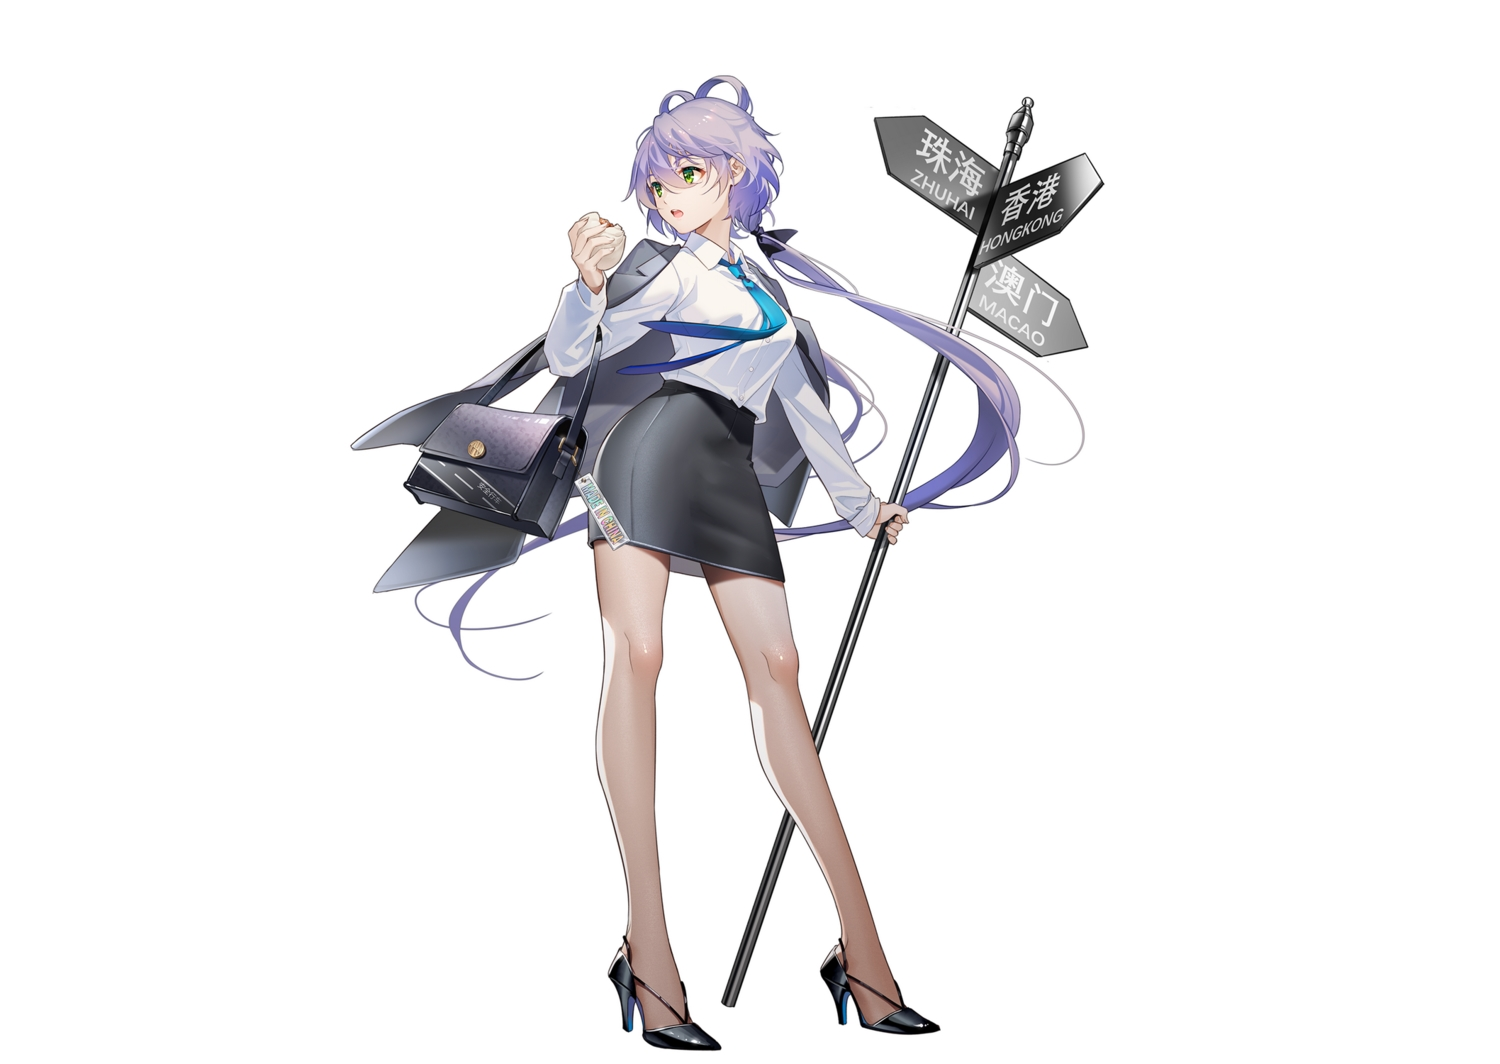 cape food green_eyes long_hair luo_tianyi purple_hair shirt skirt suit tidsean tie twintails vocaloid vocaloid_china white